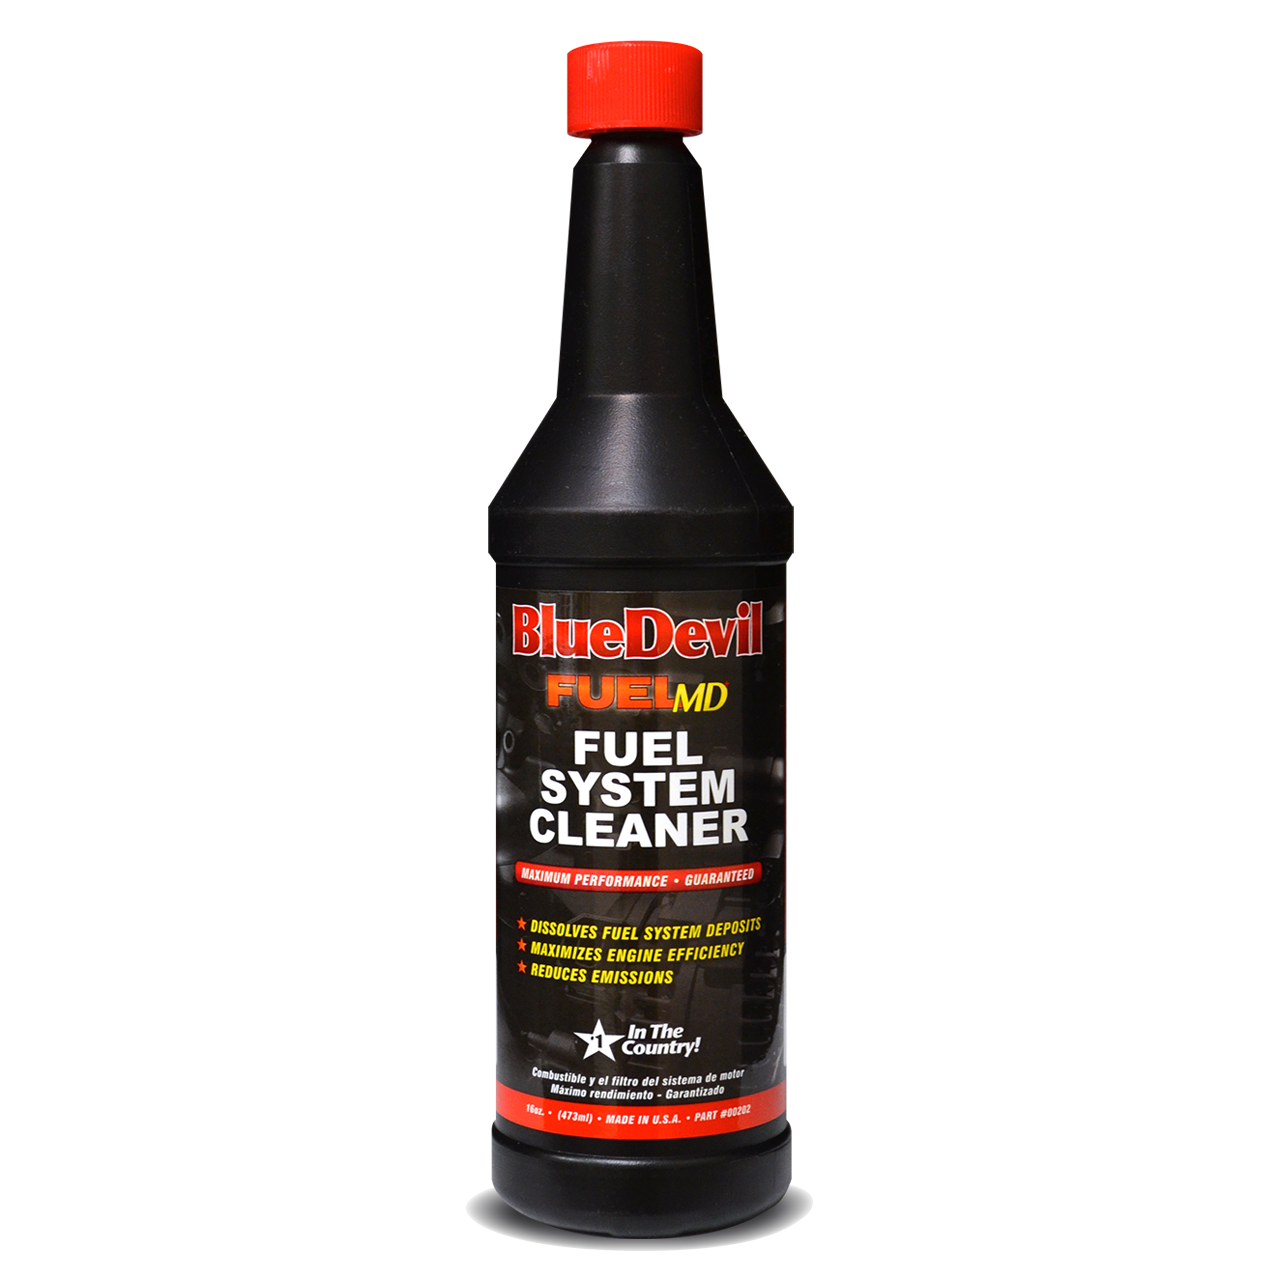 Fuel System Cleaner 00202 Soy Sauce Bottle System Clean